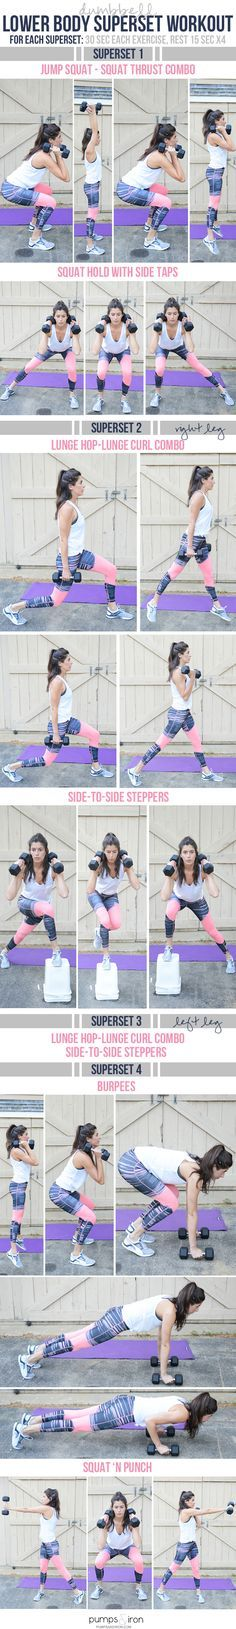 Lower Body Superset Workout - the compound exercises will give you a full-body burn with an emphasis on butt & legs